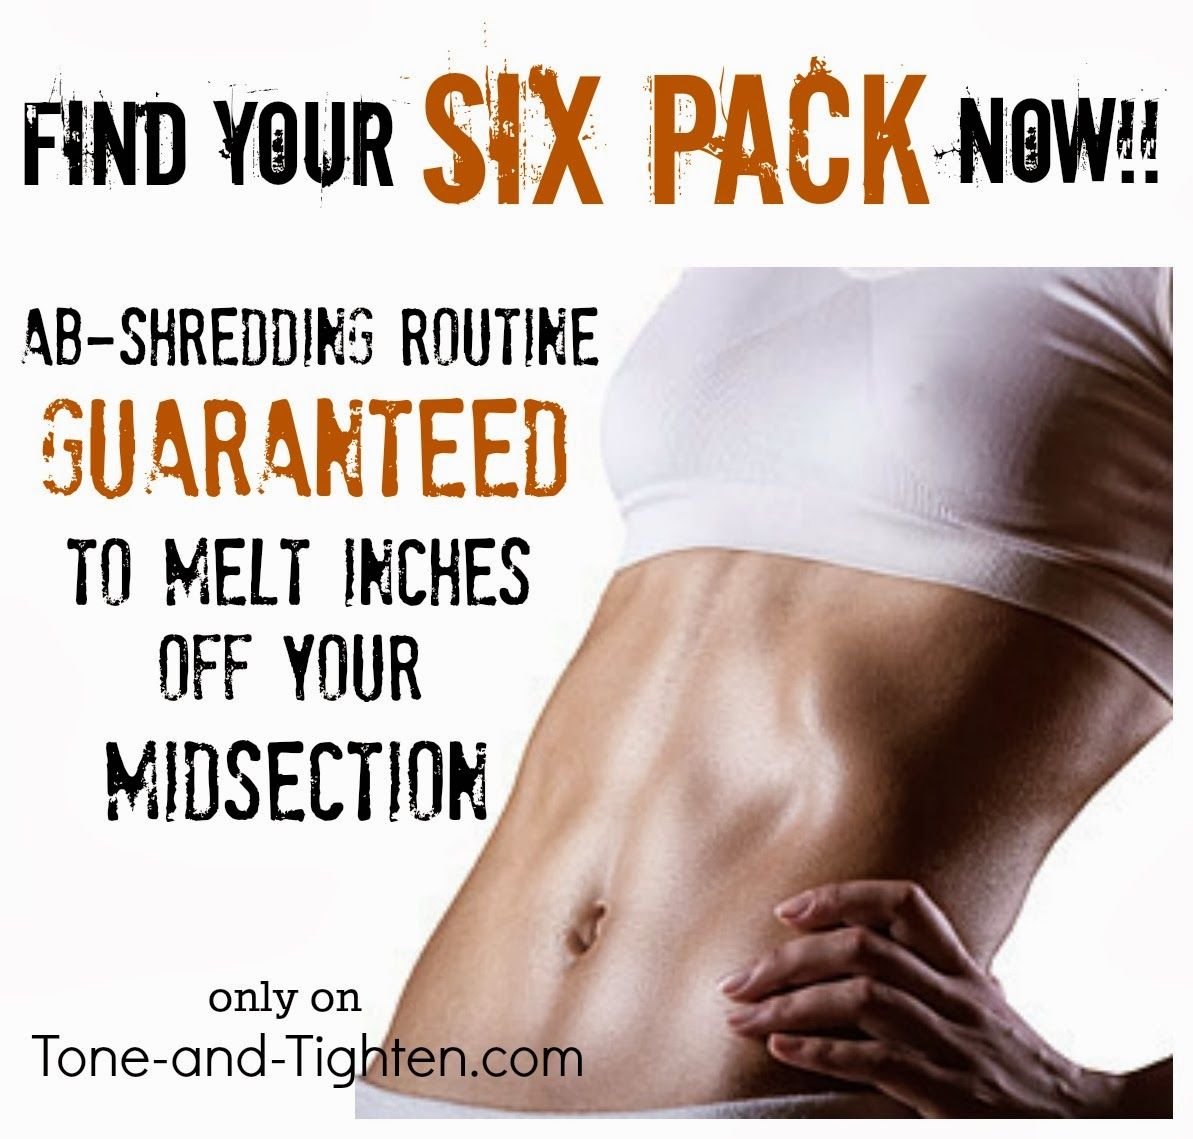 Uncover your six pack now with this ab-shredding routine from Tone-and-Tighten.com